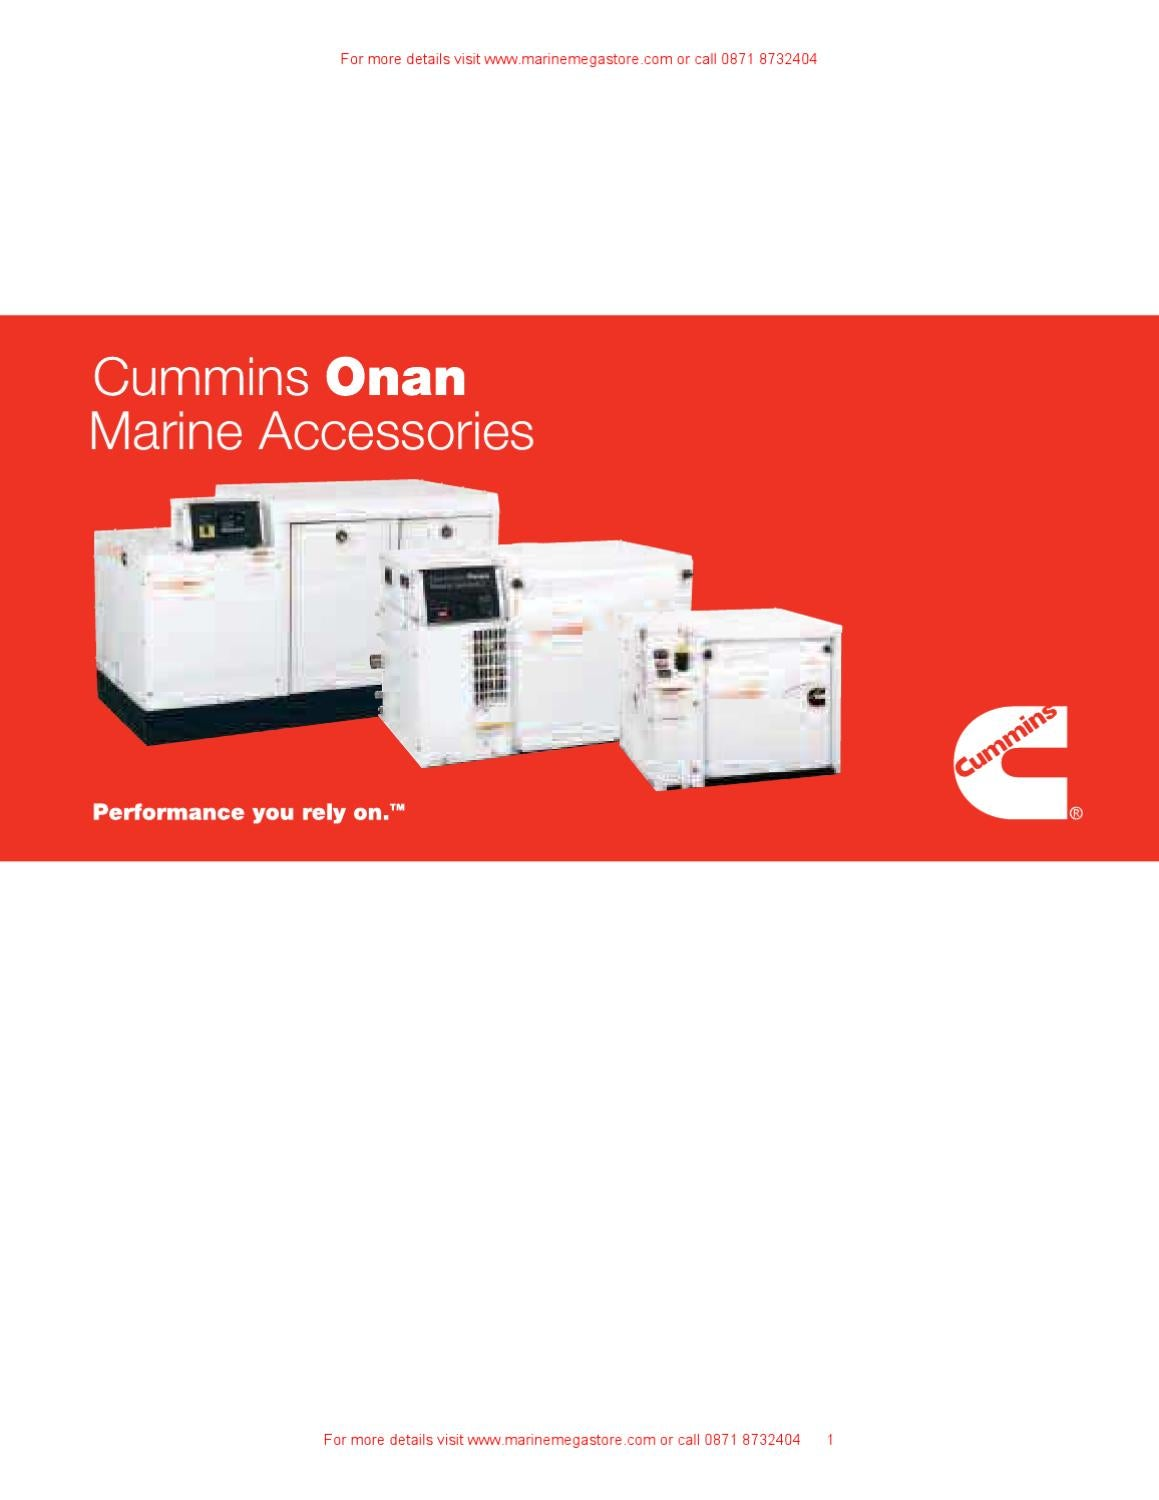 Cummins onan marine accessories by marine mega store ltd for Small room 9 paging ground control